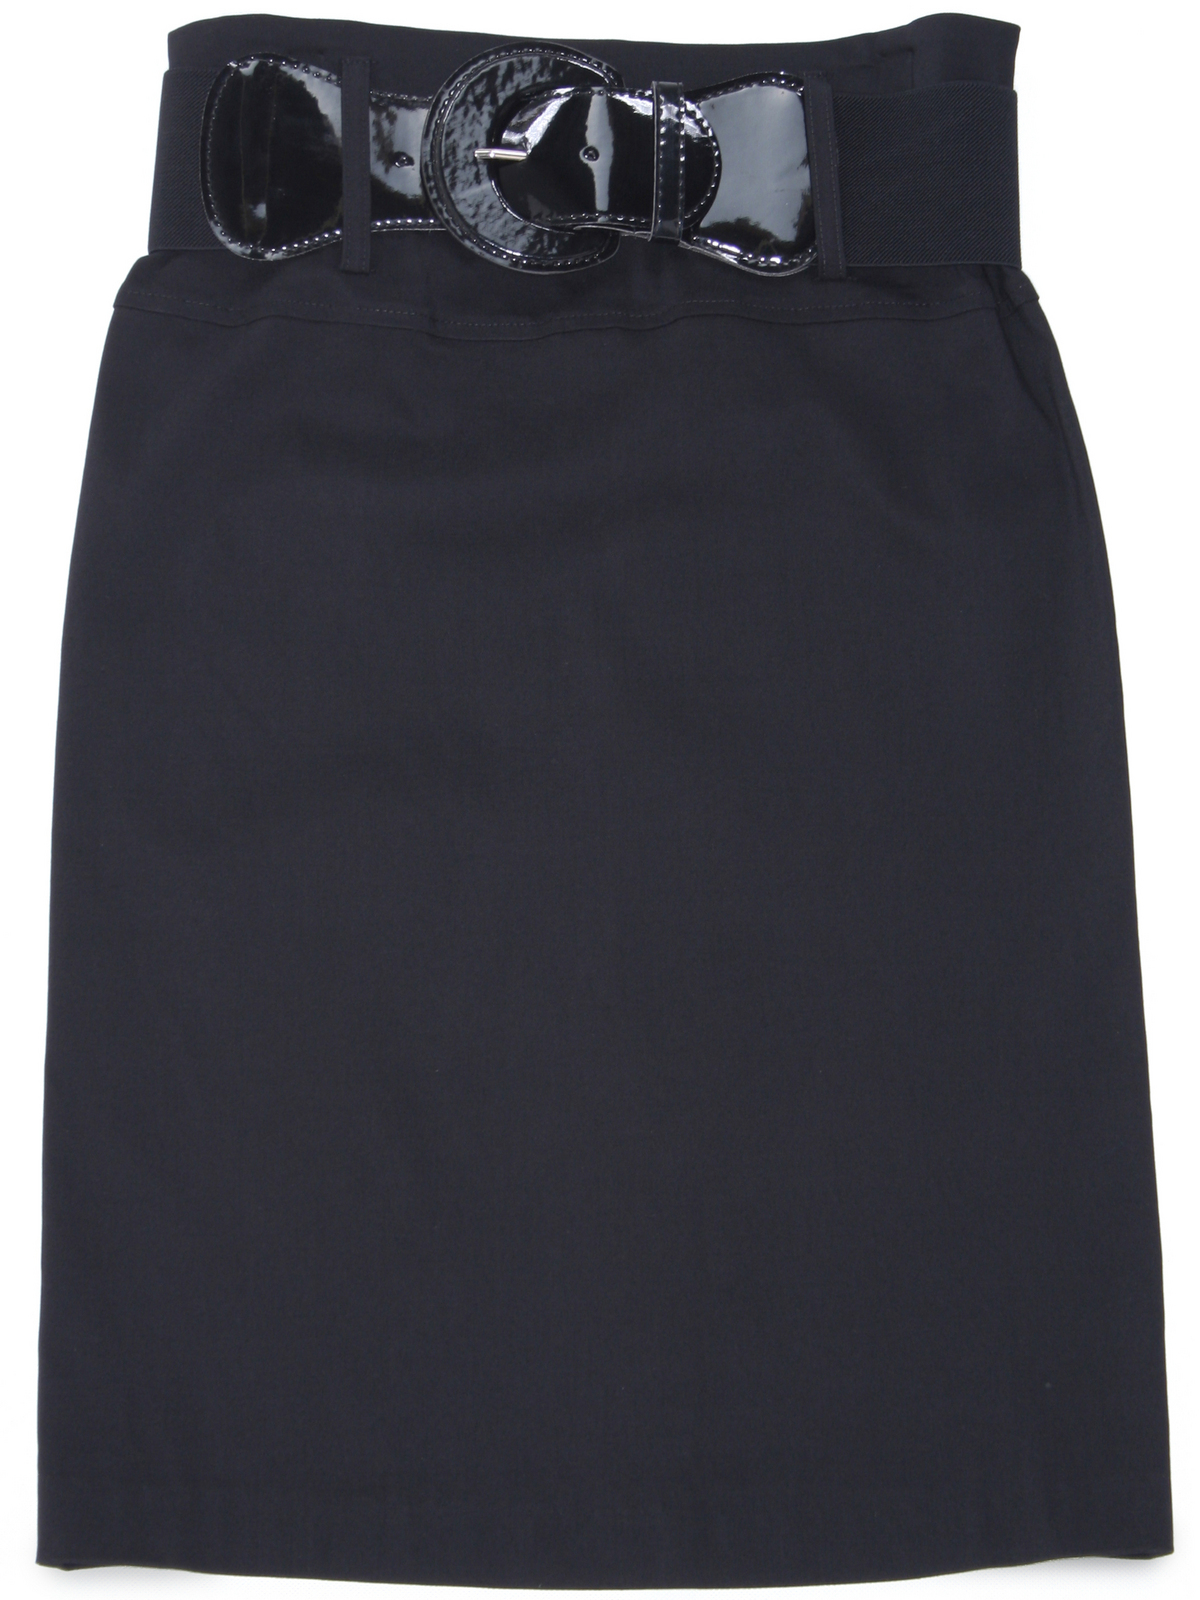 Black Mid Length Pencil Skirt with Belt | Sung Boutique L.A.